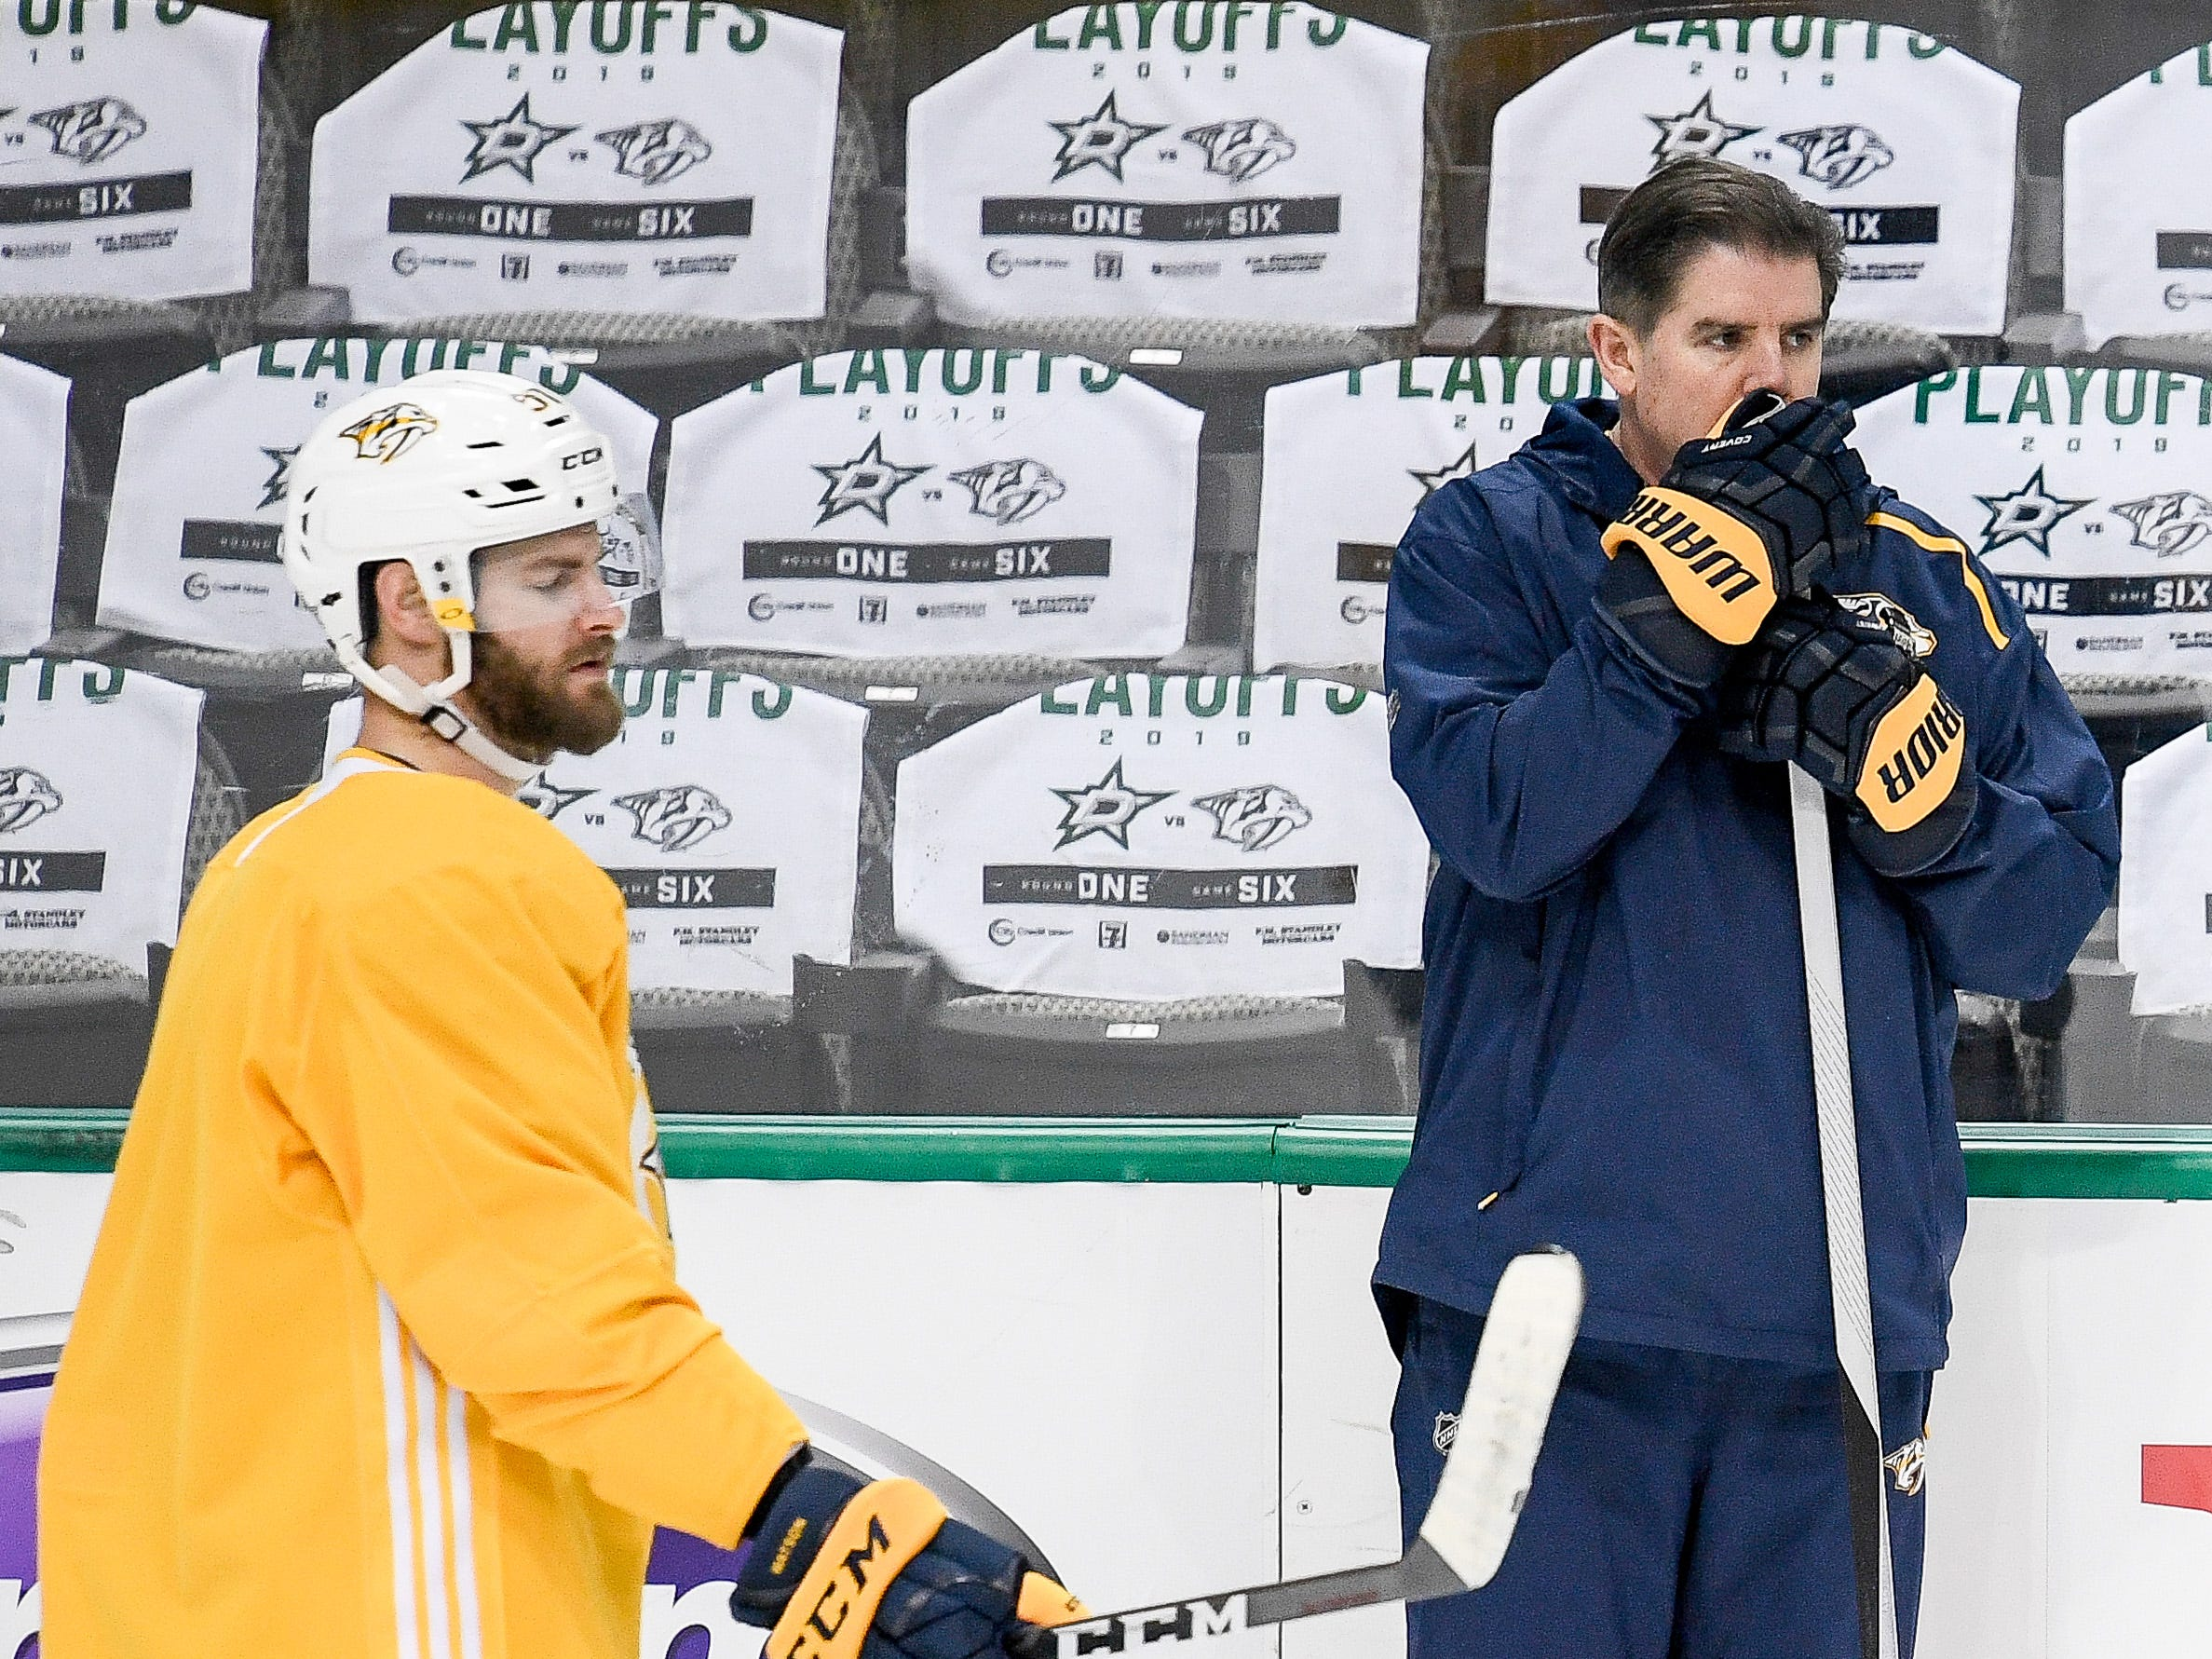 Nashville Predators head coach Peter Laviolette keeps an eye on his team during practice before the divisional semifinal game against the Dallas Stars at the American Airlines Center in Dallas, Texas, Monday, April 22, 2019.